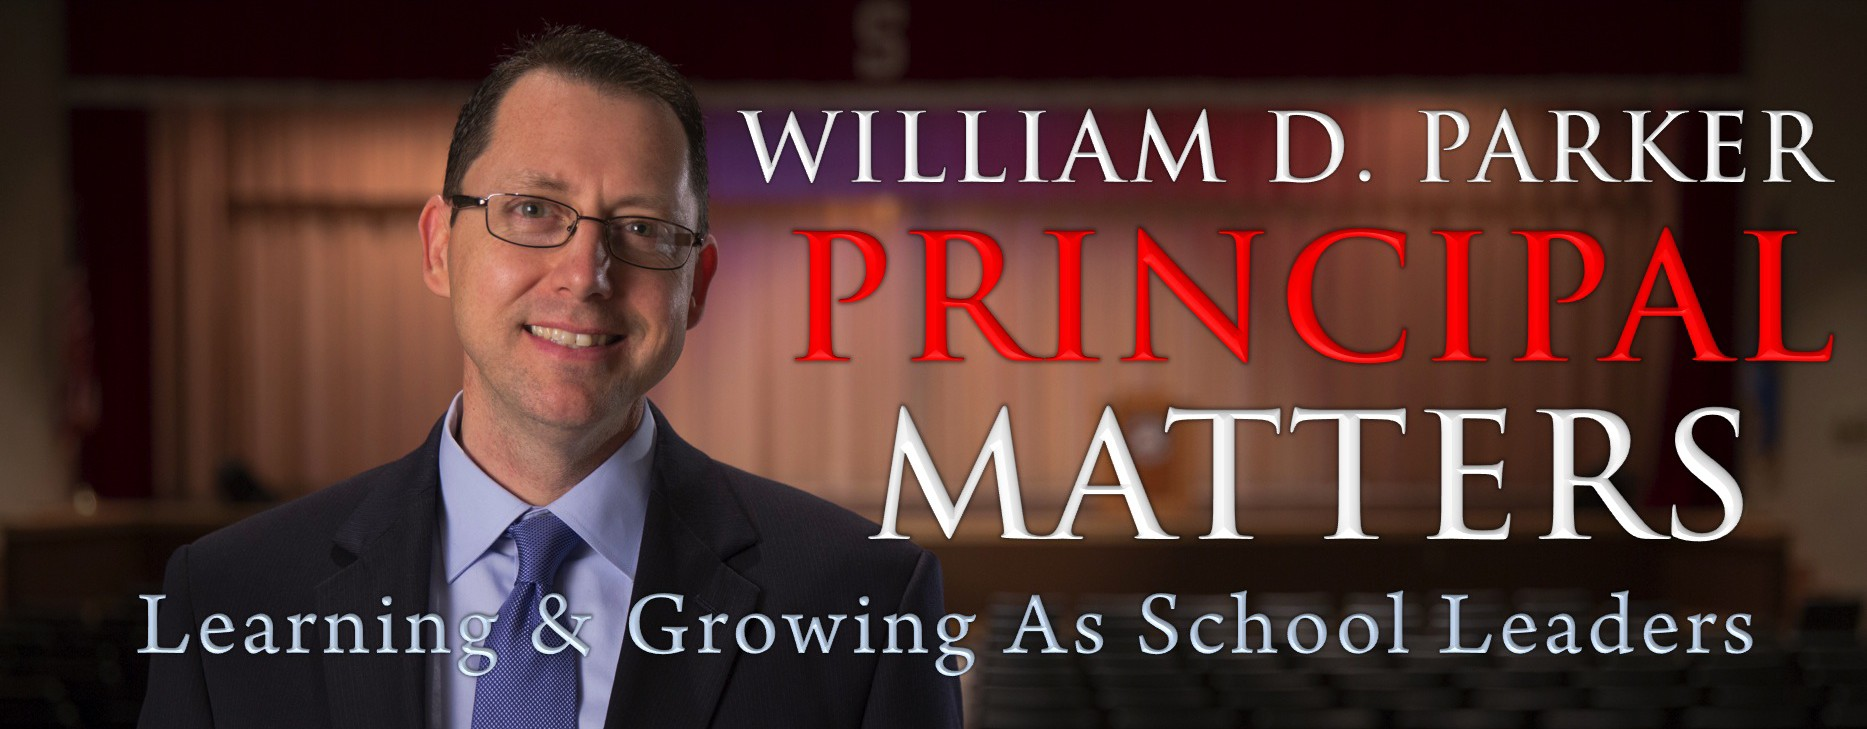 William D Parker | Principal Matters